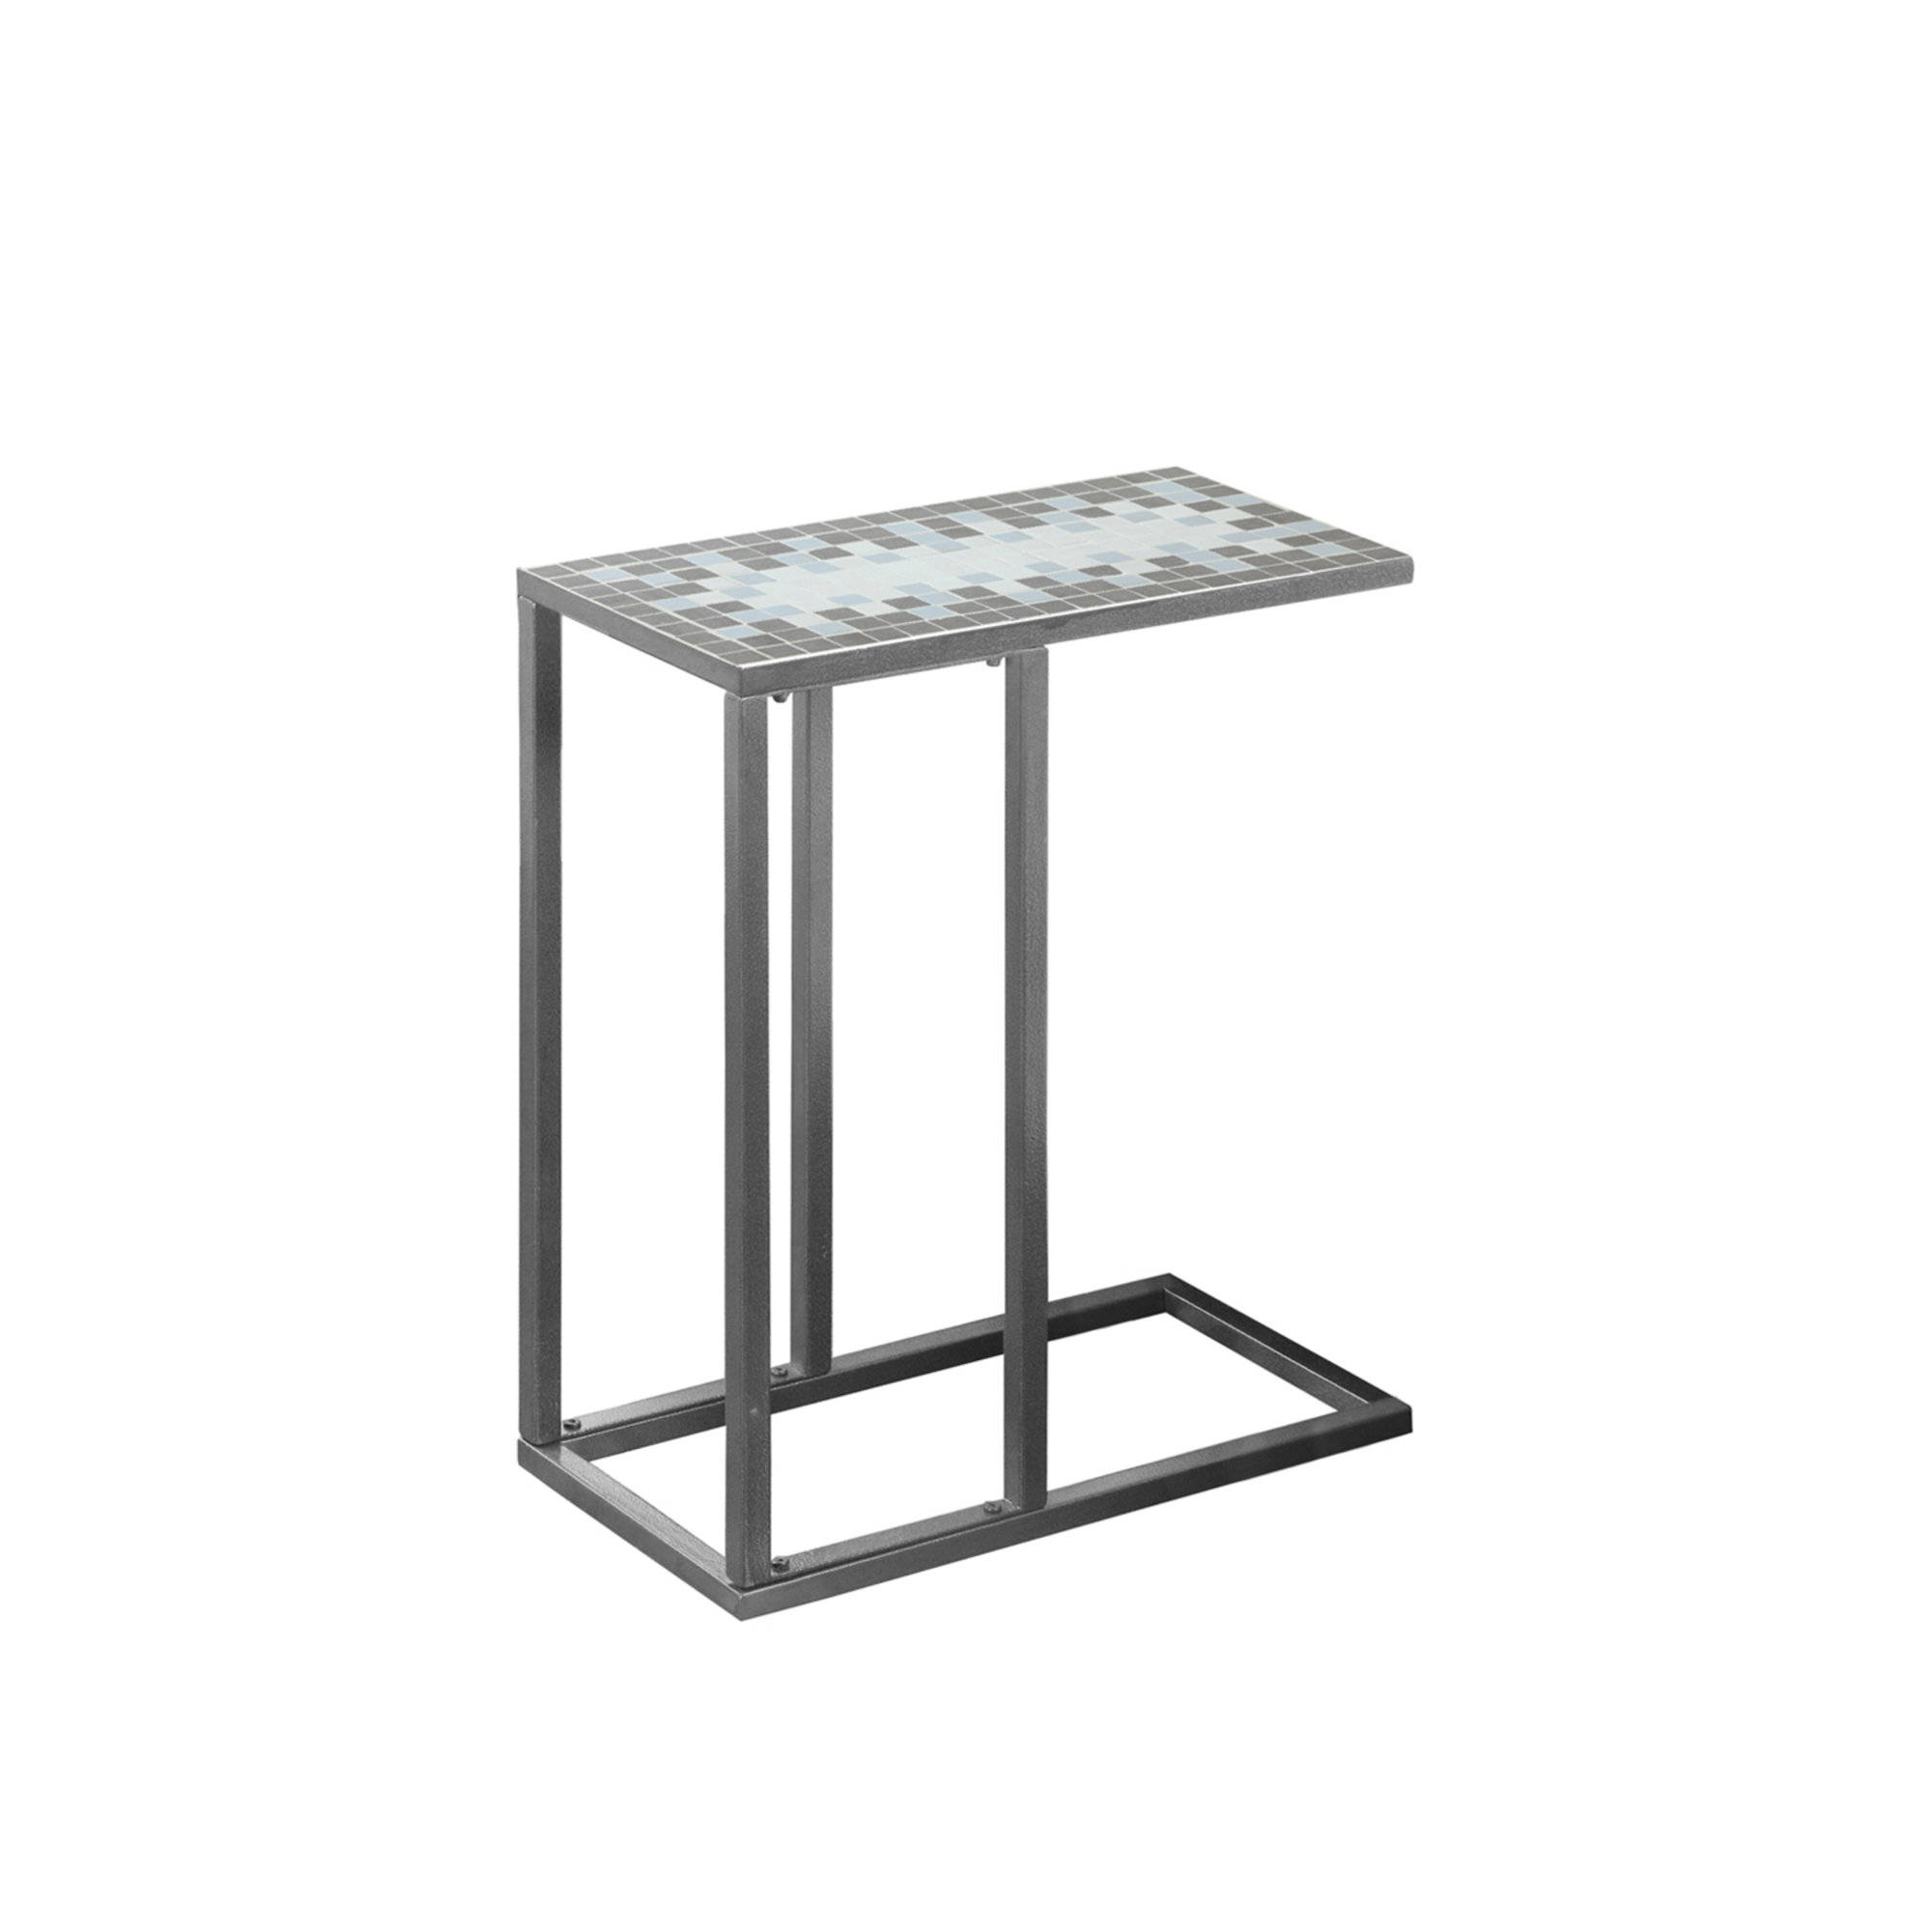 monarch specialties grey blue metal accent snack table the classy home mnc white and bedside small wooden with drawers high back dining chairs large marble top coffee floor